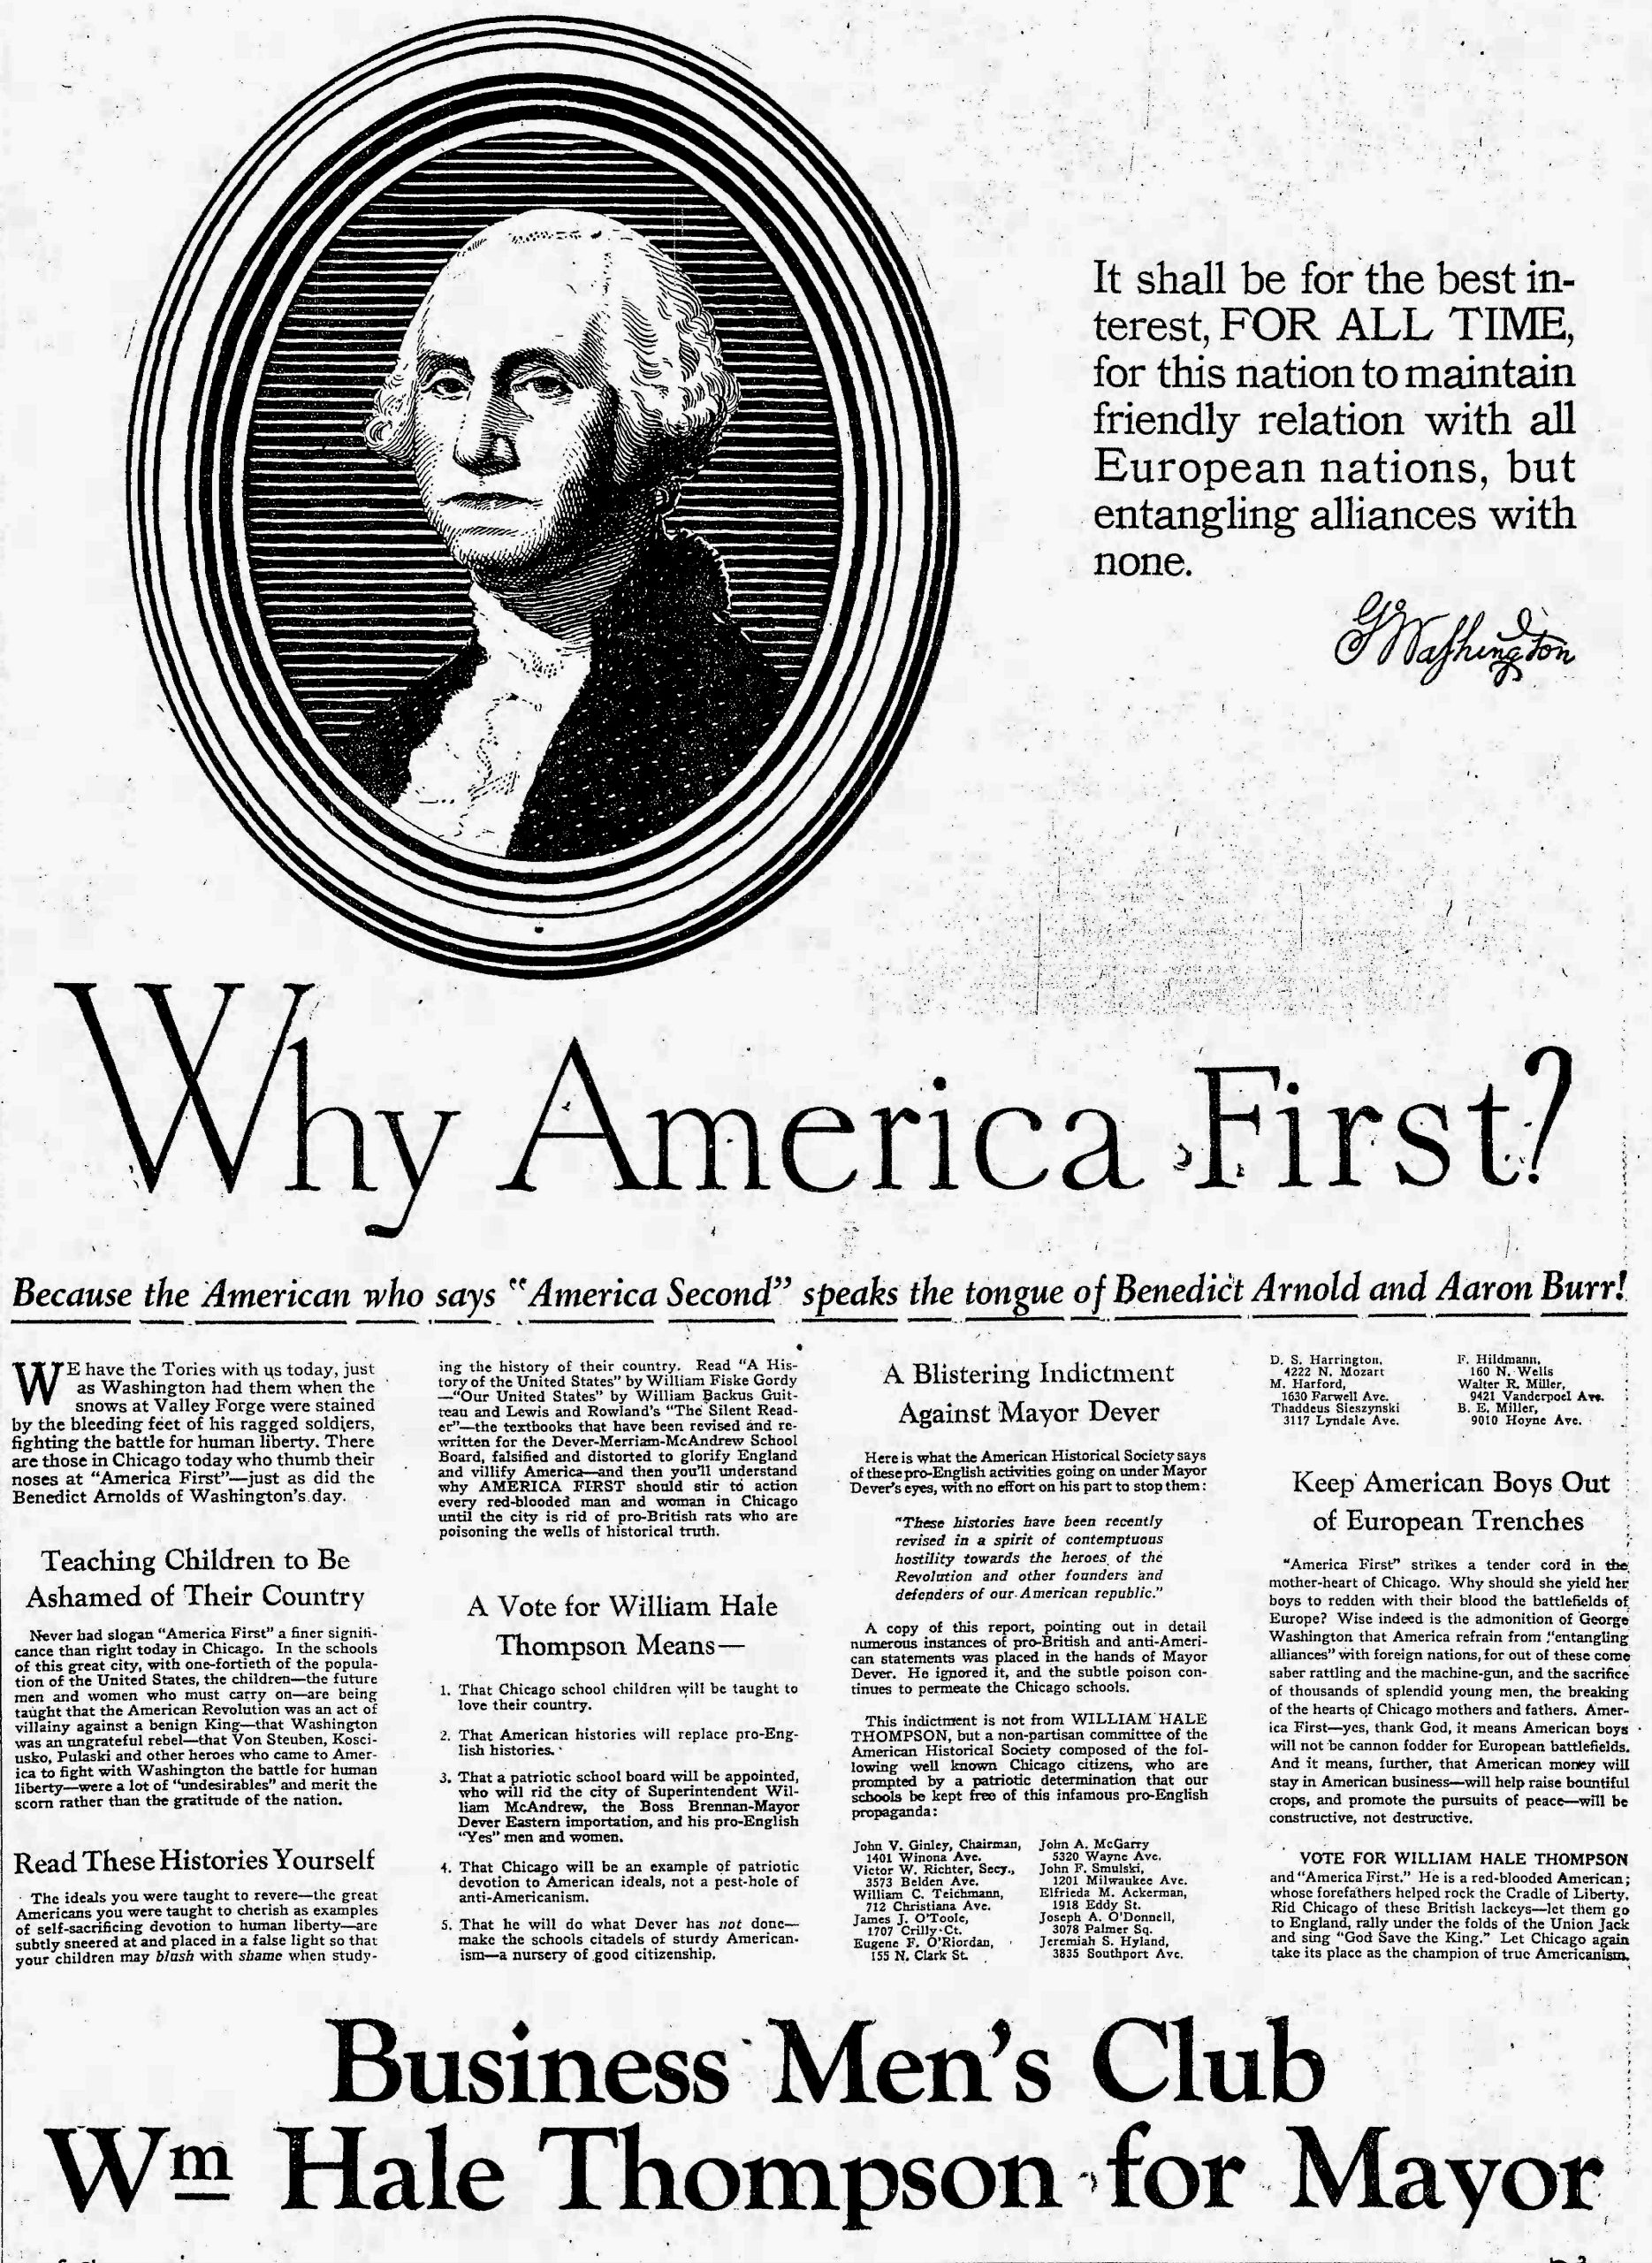 """In a 1927 campaign ad, Big Bill Thompson decried how Chicago schoolchildren were taught that George III was a """"benign king"""" and that George Washington was """"an ungrateful rebel."""""""